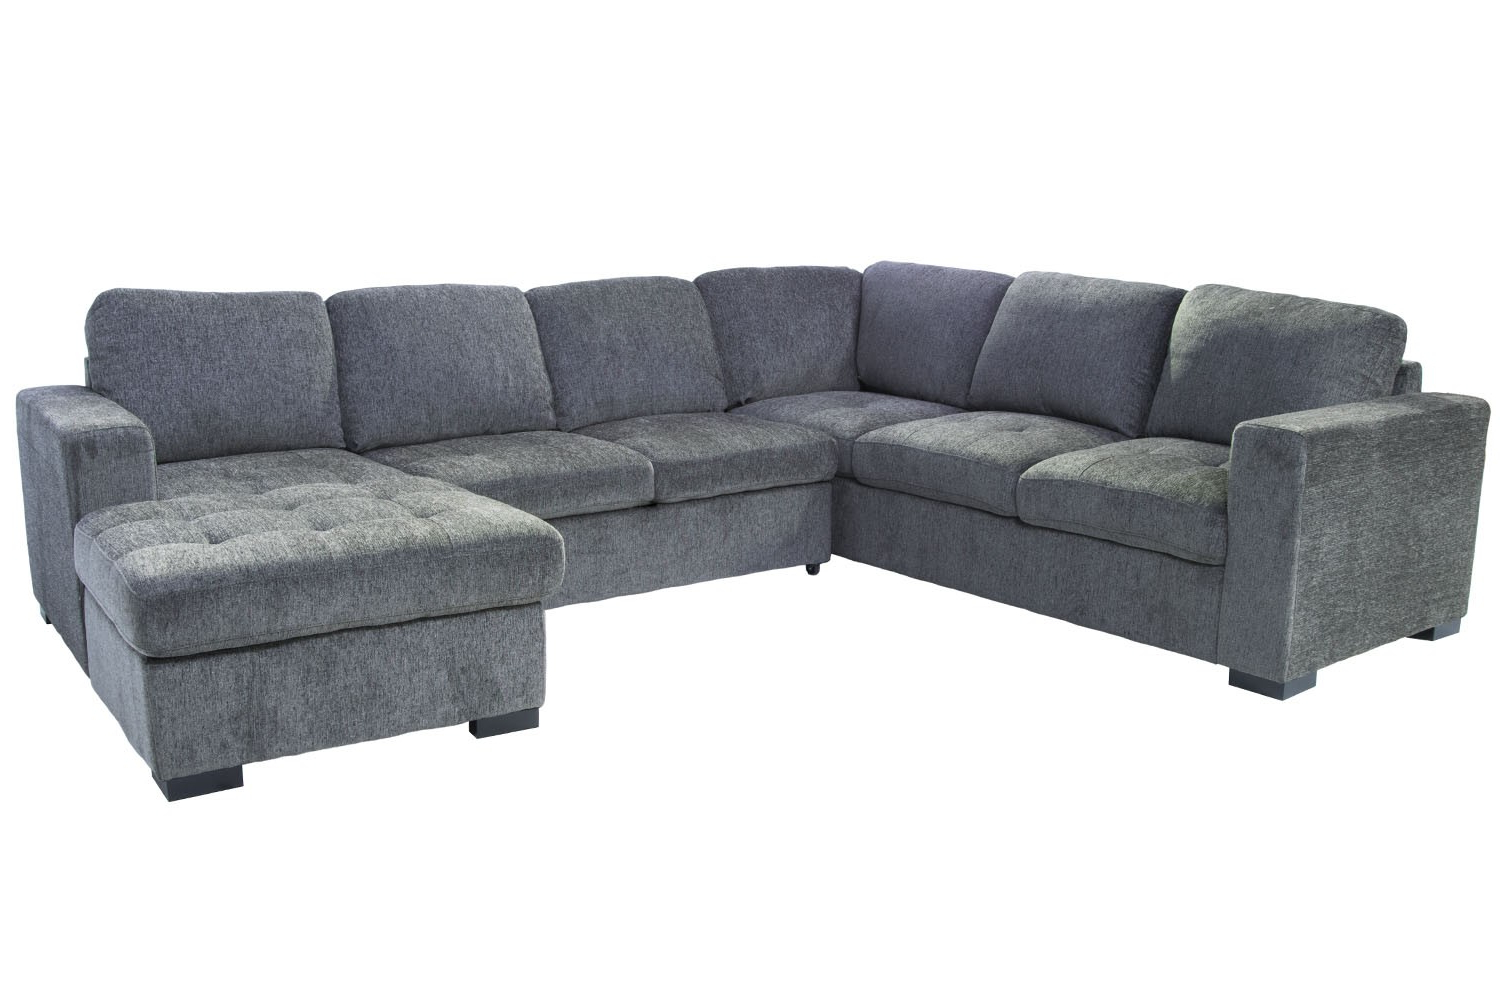 Waylon 3 Piece Power Reclining Sectionals Intended For Current Sectional Sofas (View 18 of 20)